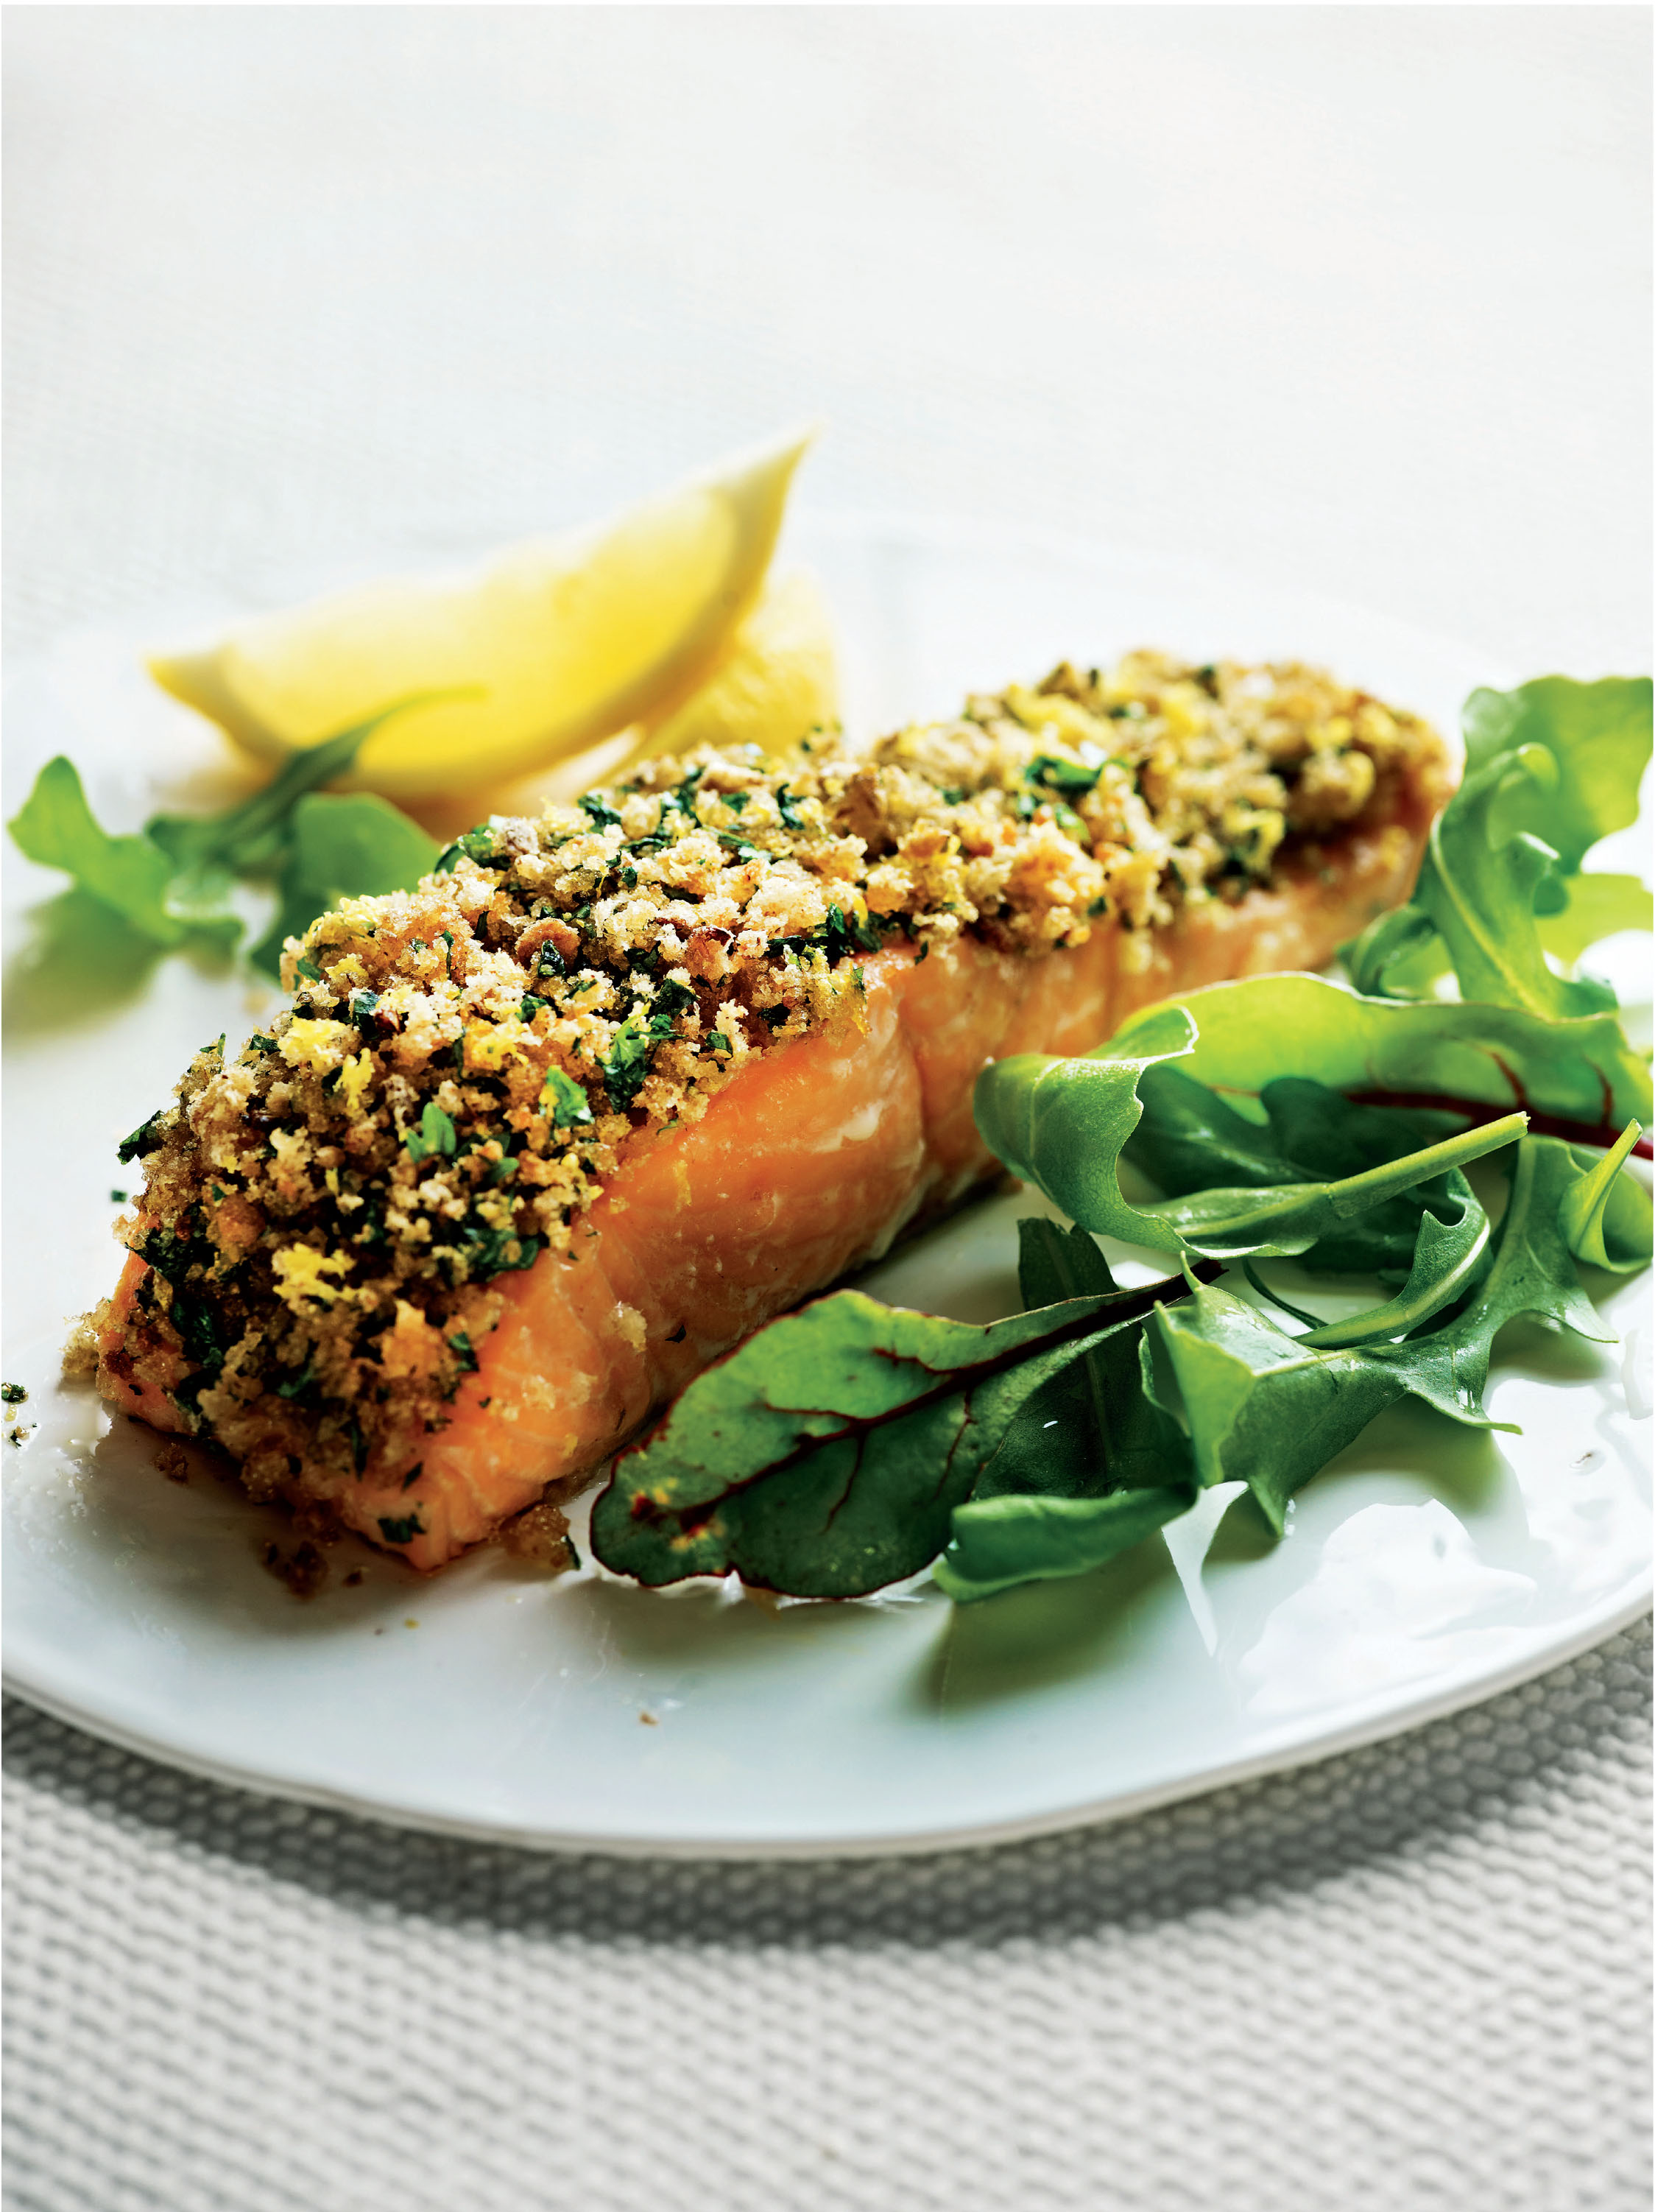 Baked salmon with herbed omega crust